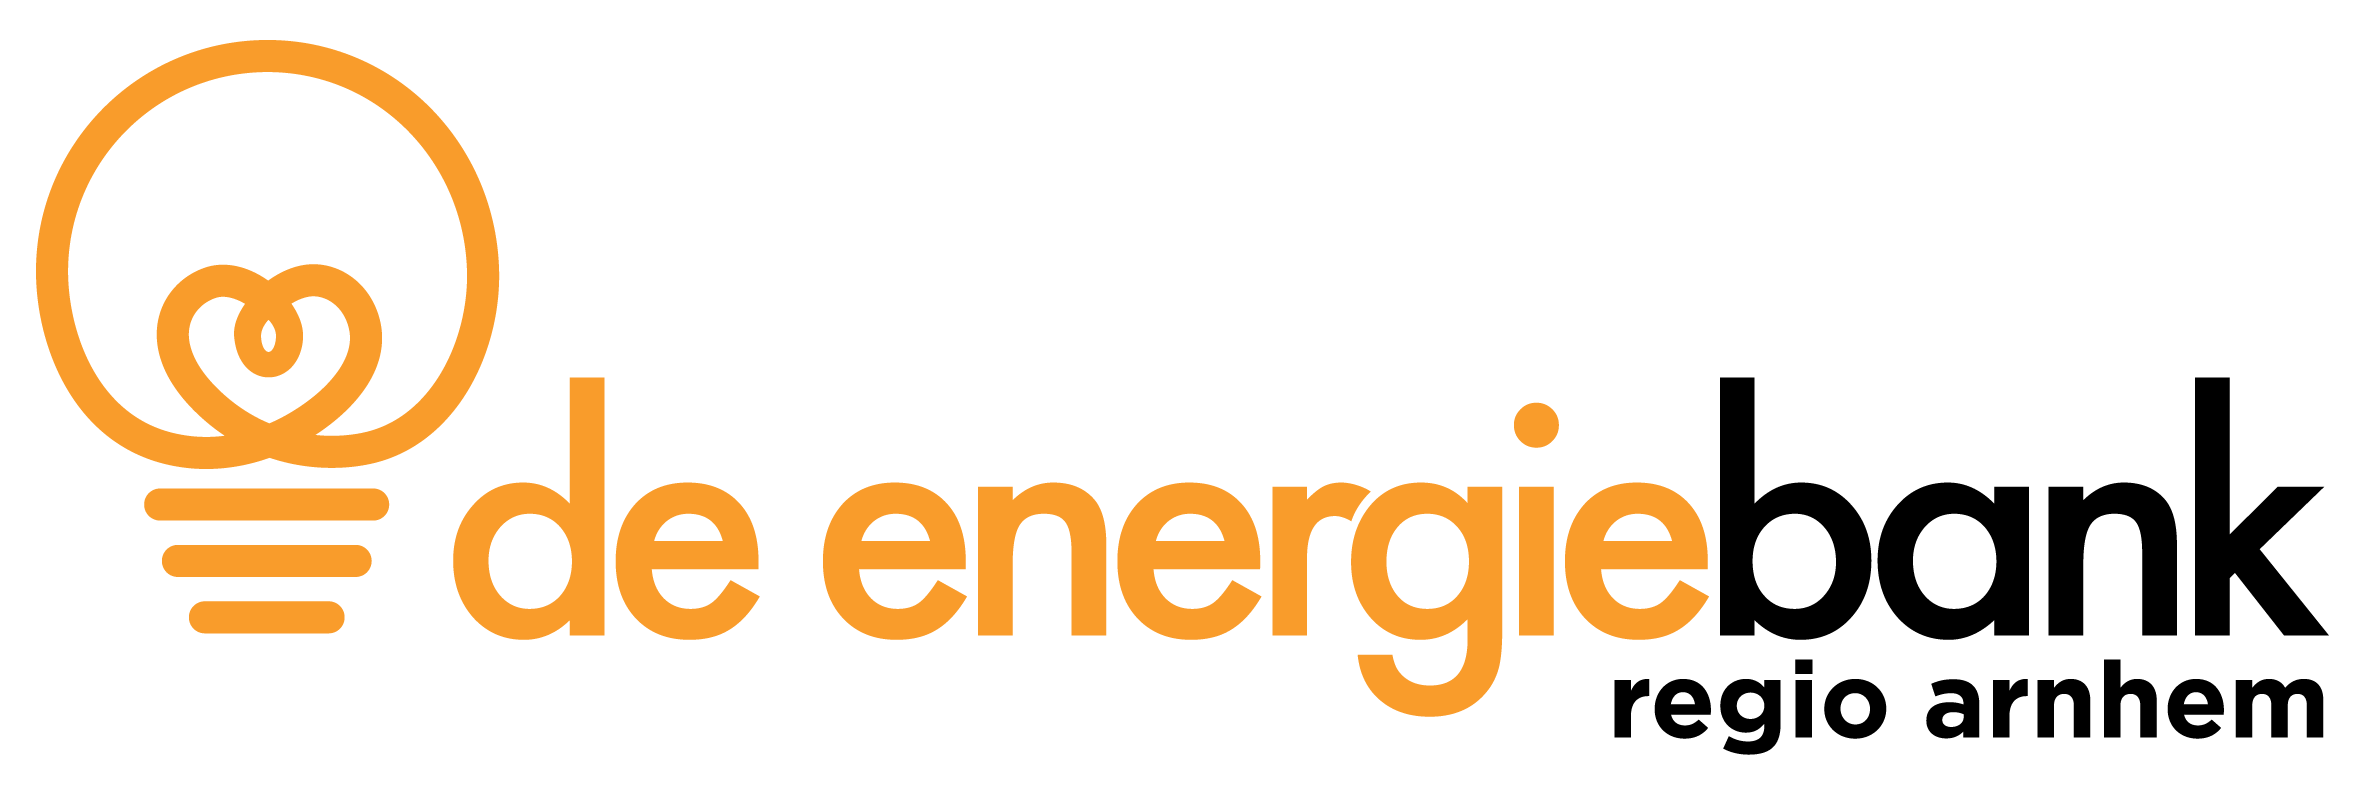 Energiebank Regio Arnhem